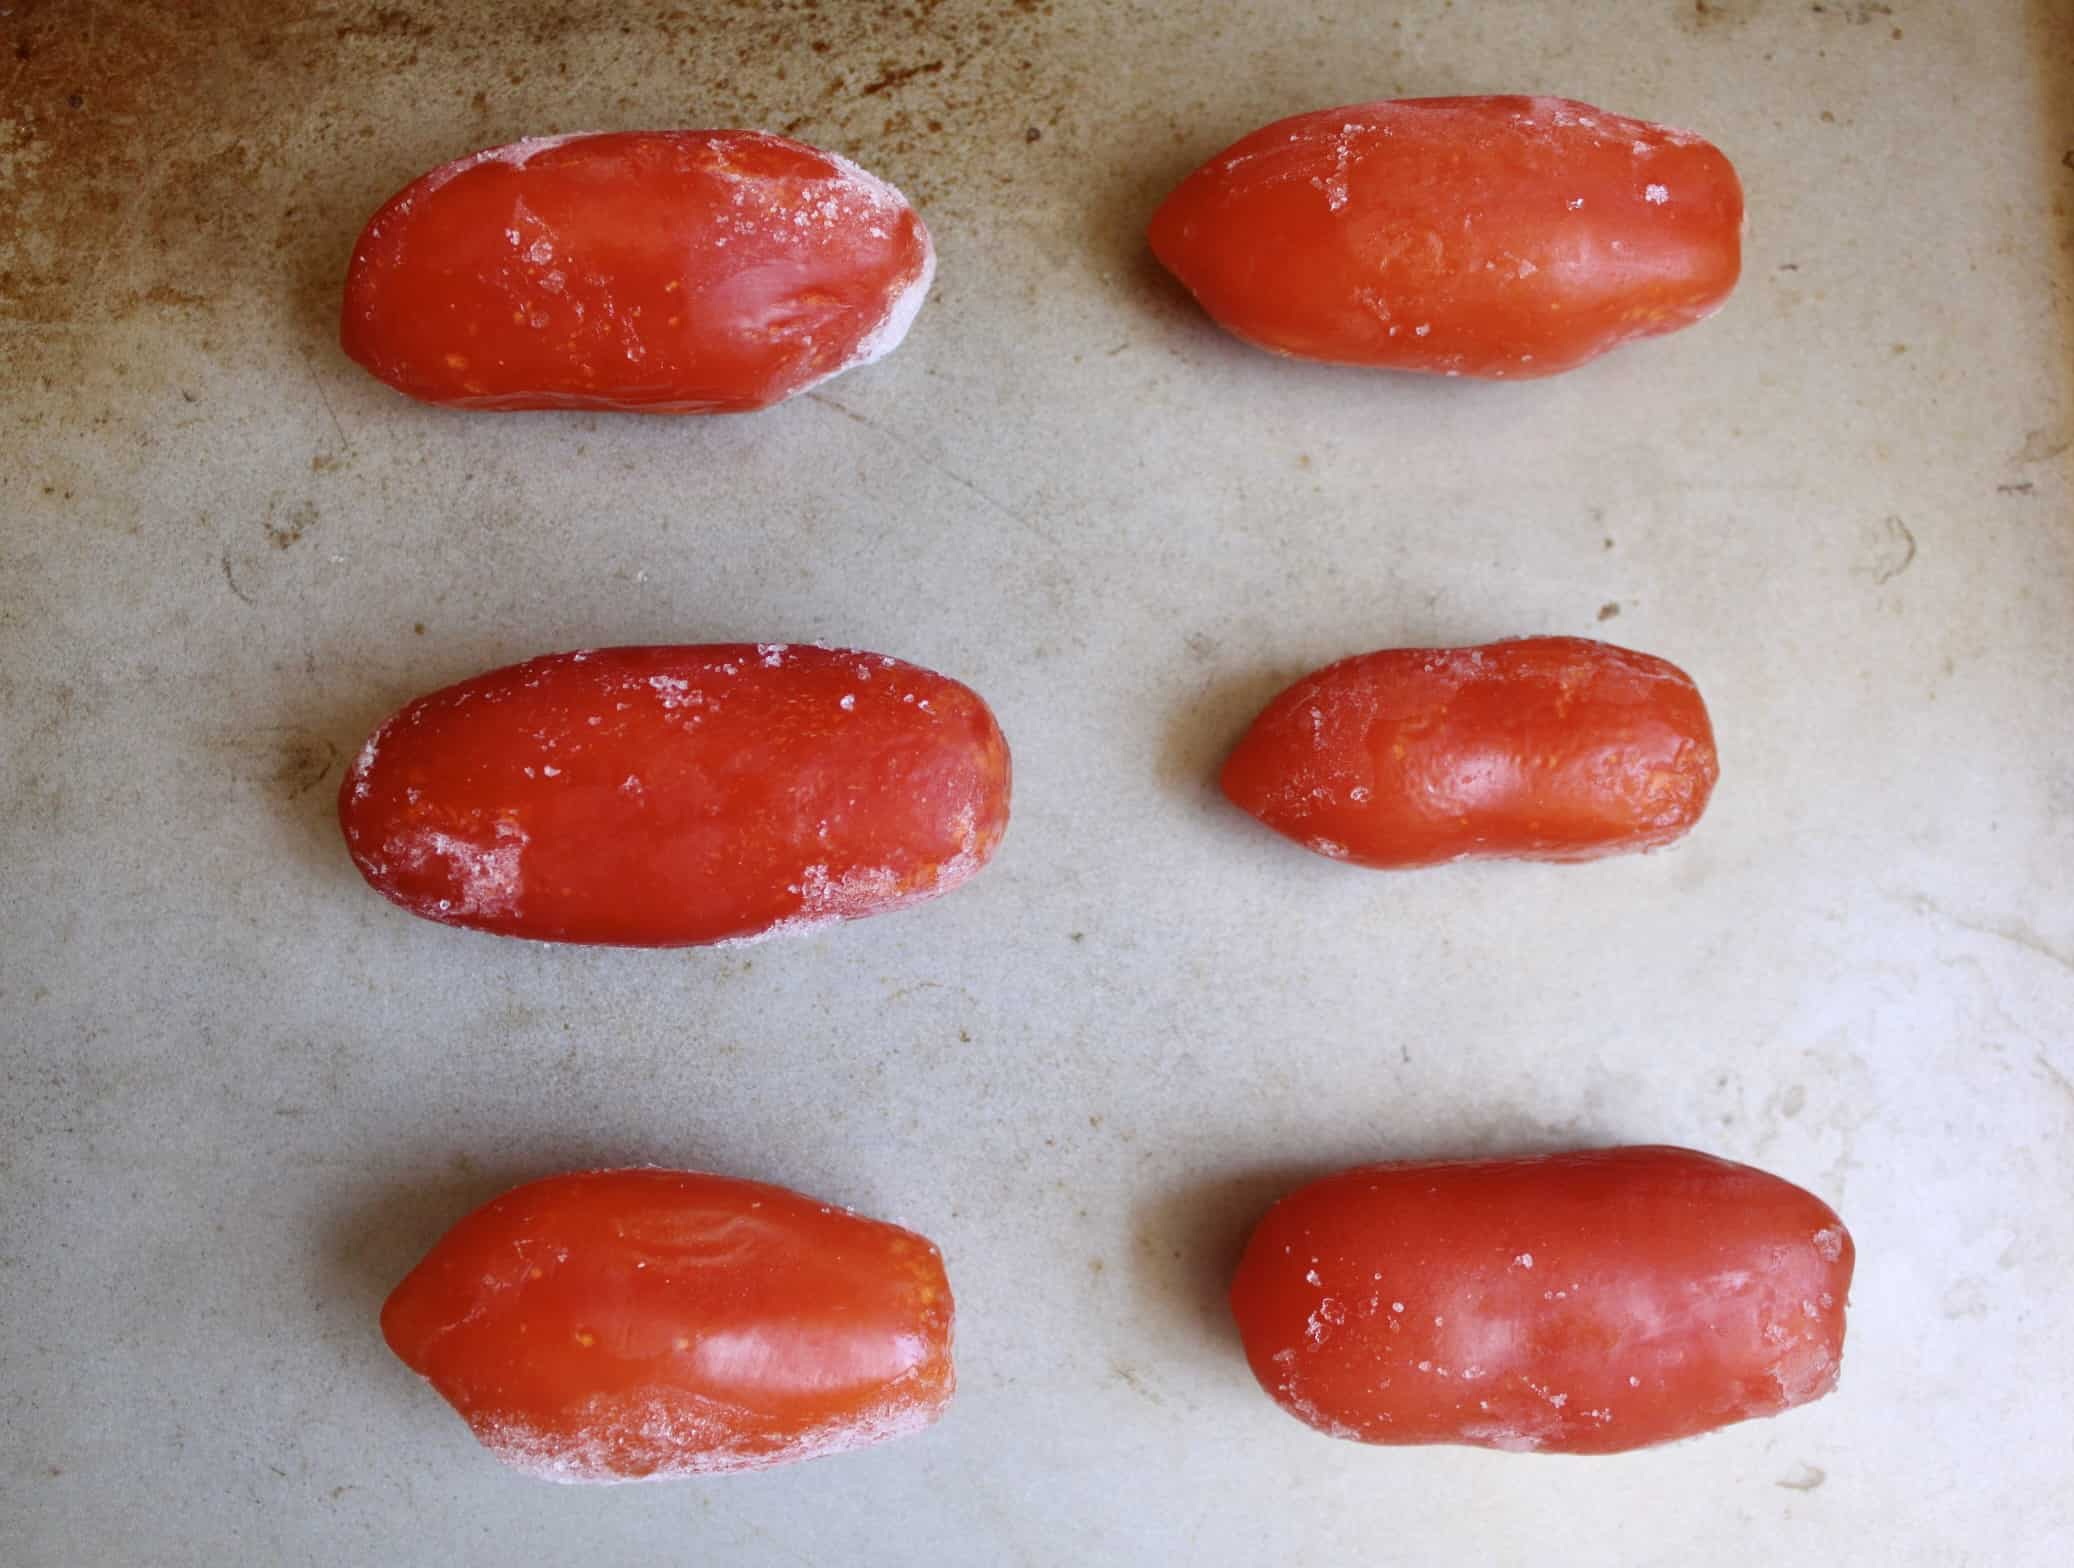 frozen tomatoes on a tray